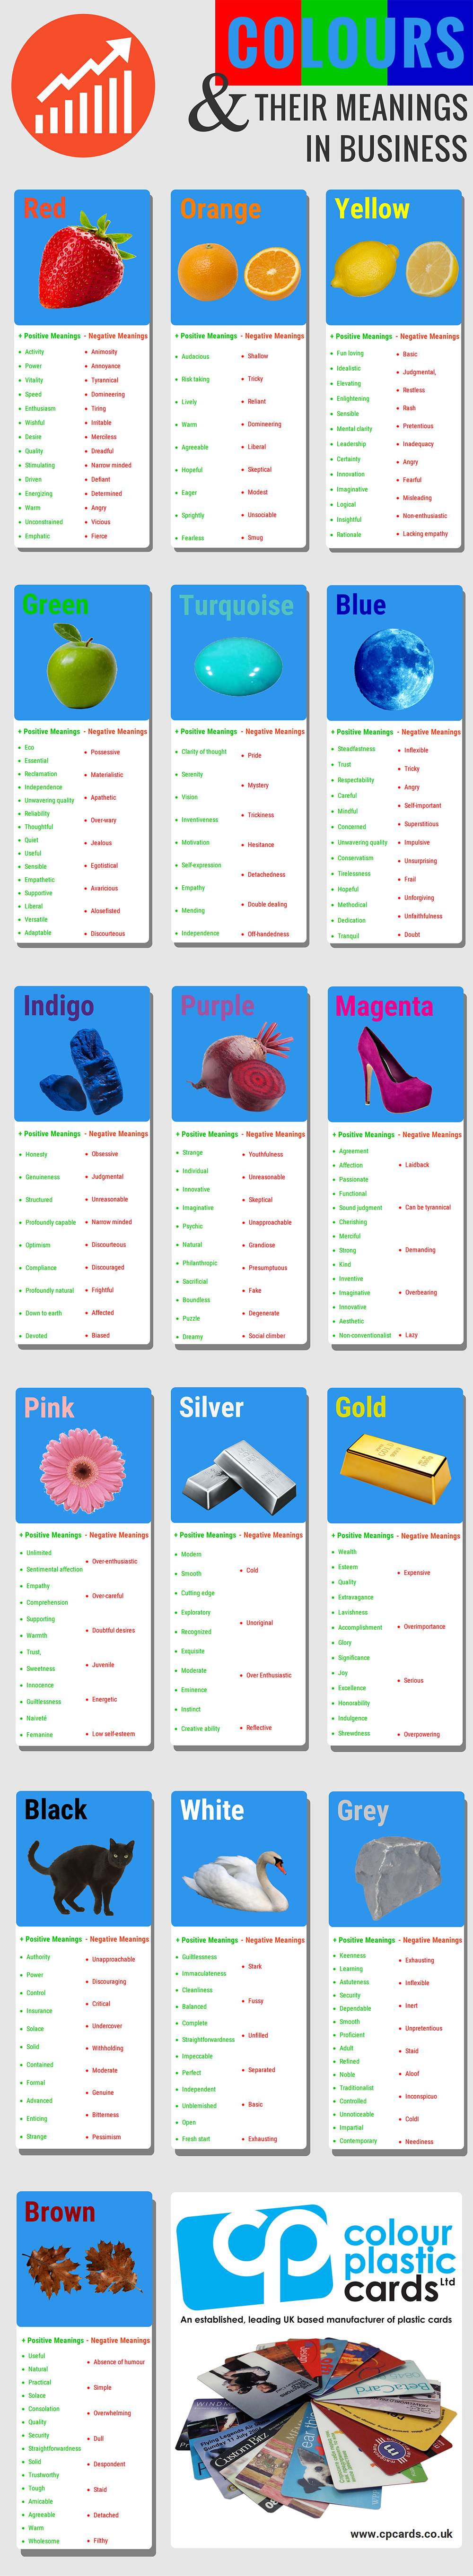 colours and their meanings in business